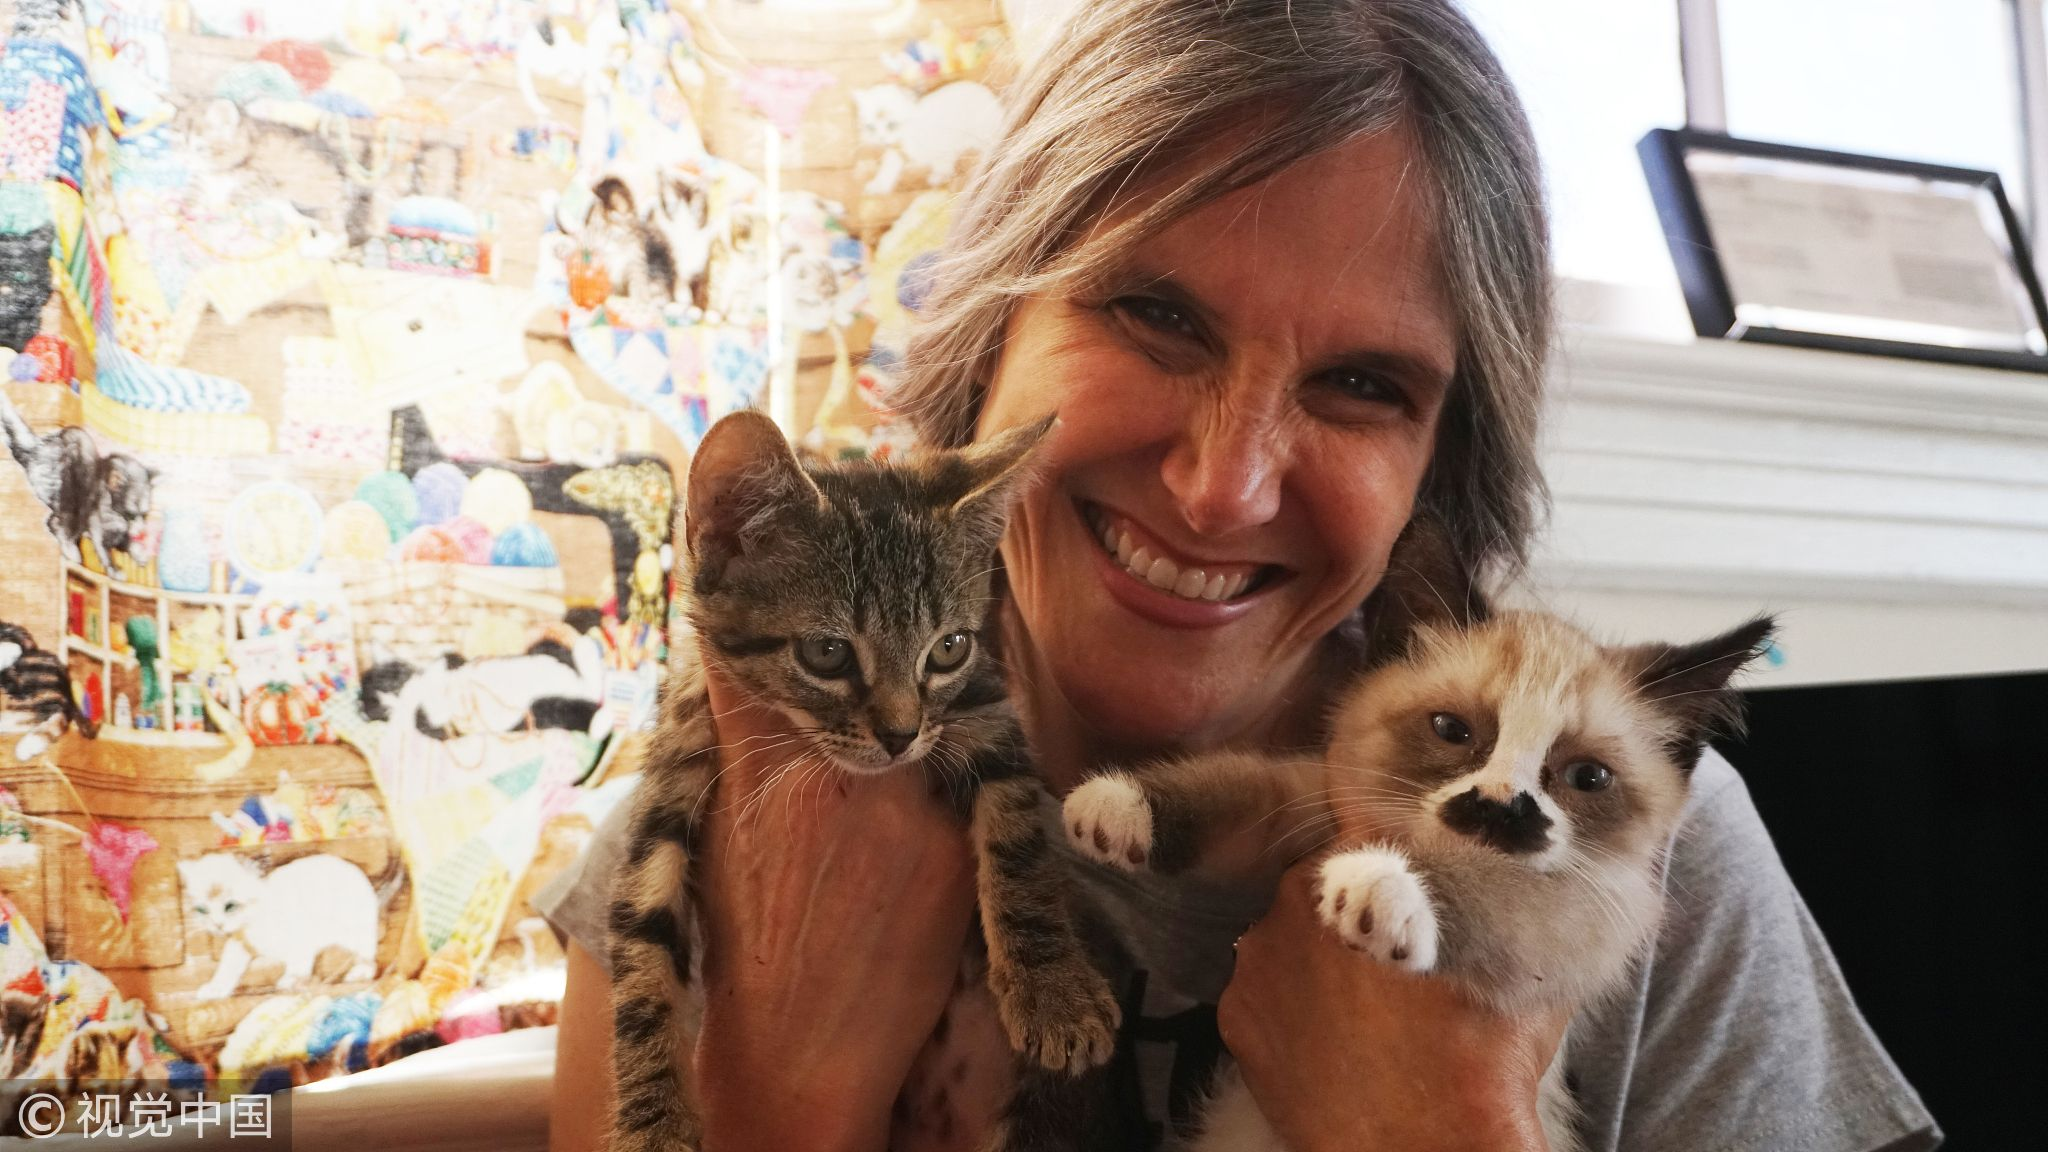 No More Feral Cats Inside Charm School A School For Kittens Are Rescuing And Socializing Stray Cats So That They Can Be Adopted Feral Cats Cats Animal Stories